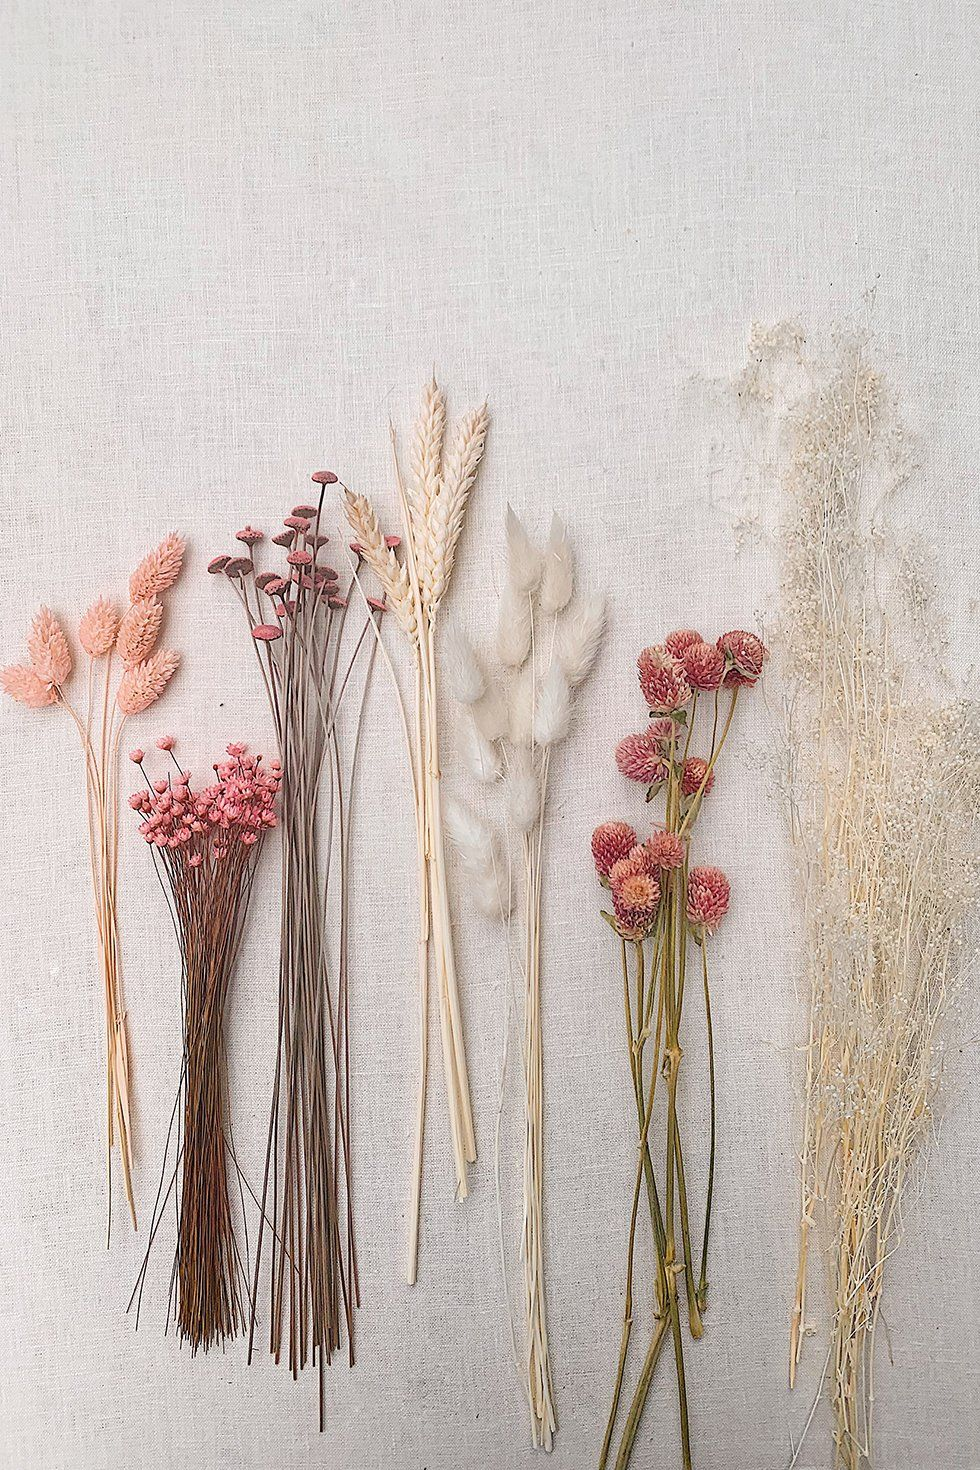 The most difficult part about arranging your own dried flowers is actually sourcing the flowers. I recommend first trying your local